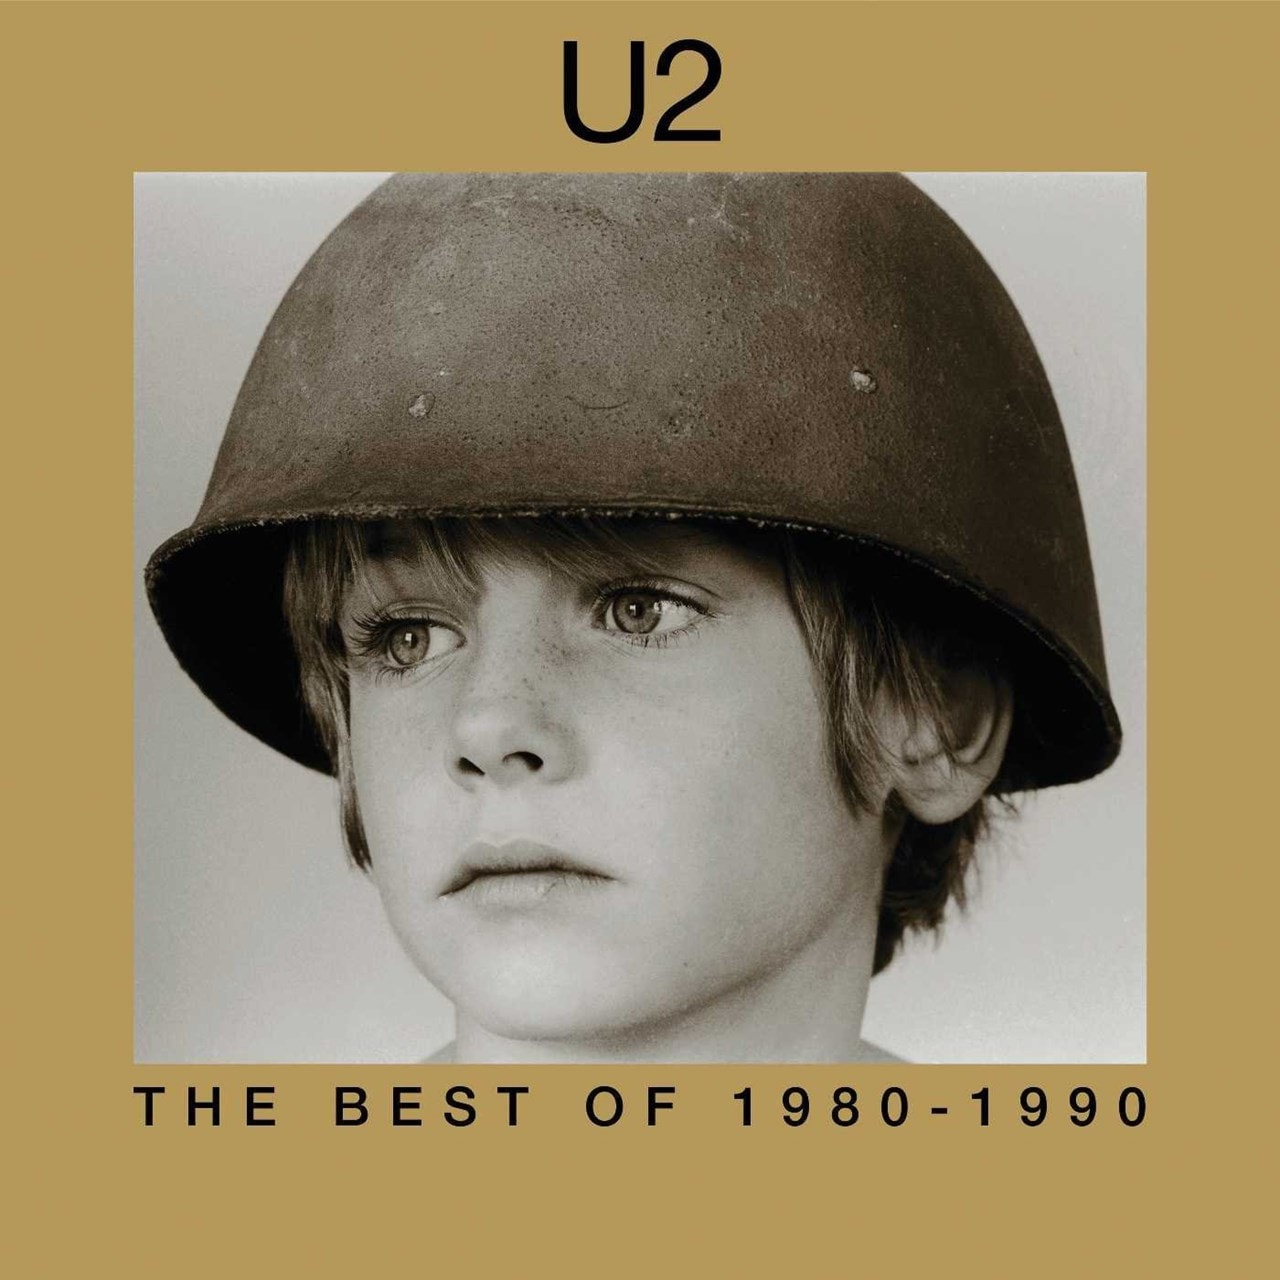 The Best of 1980-1990 - 1